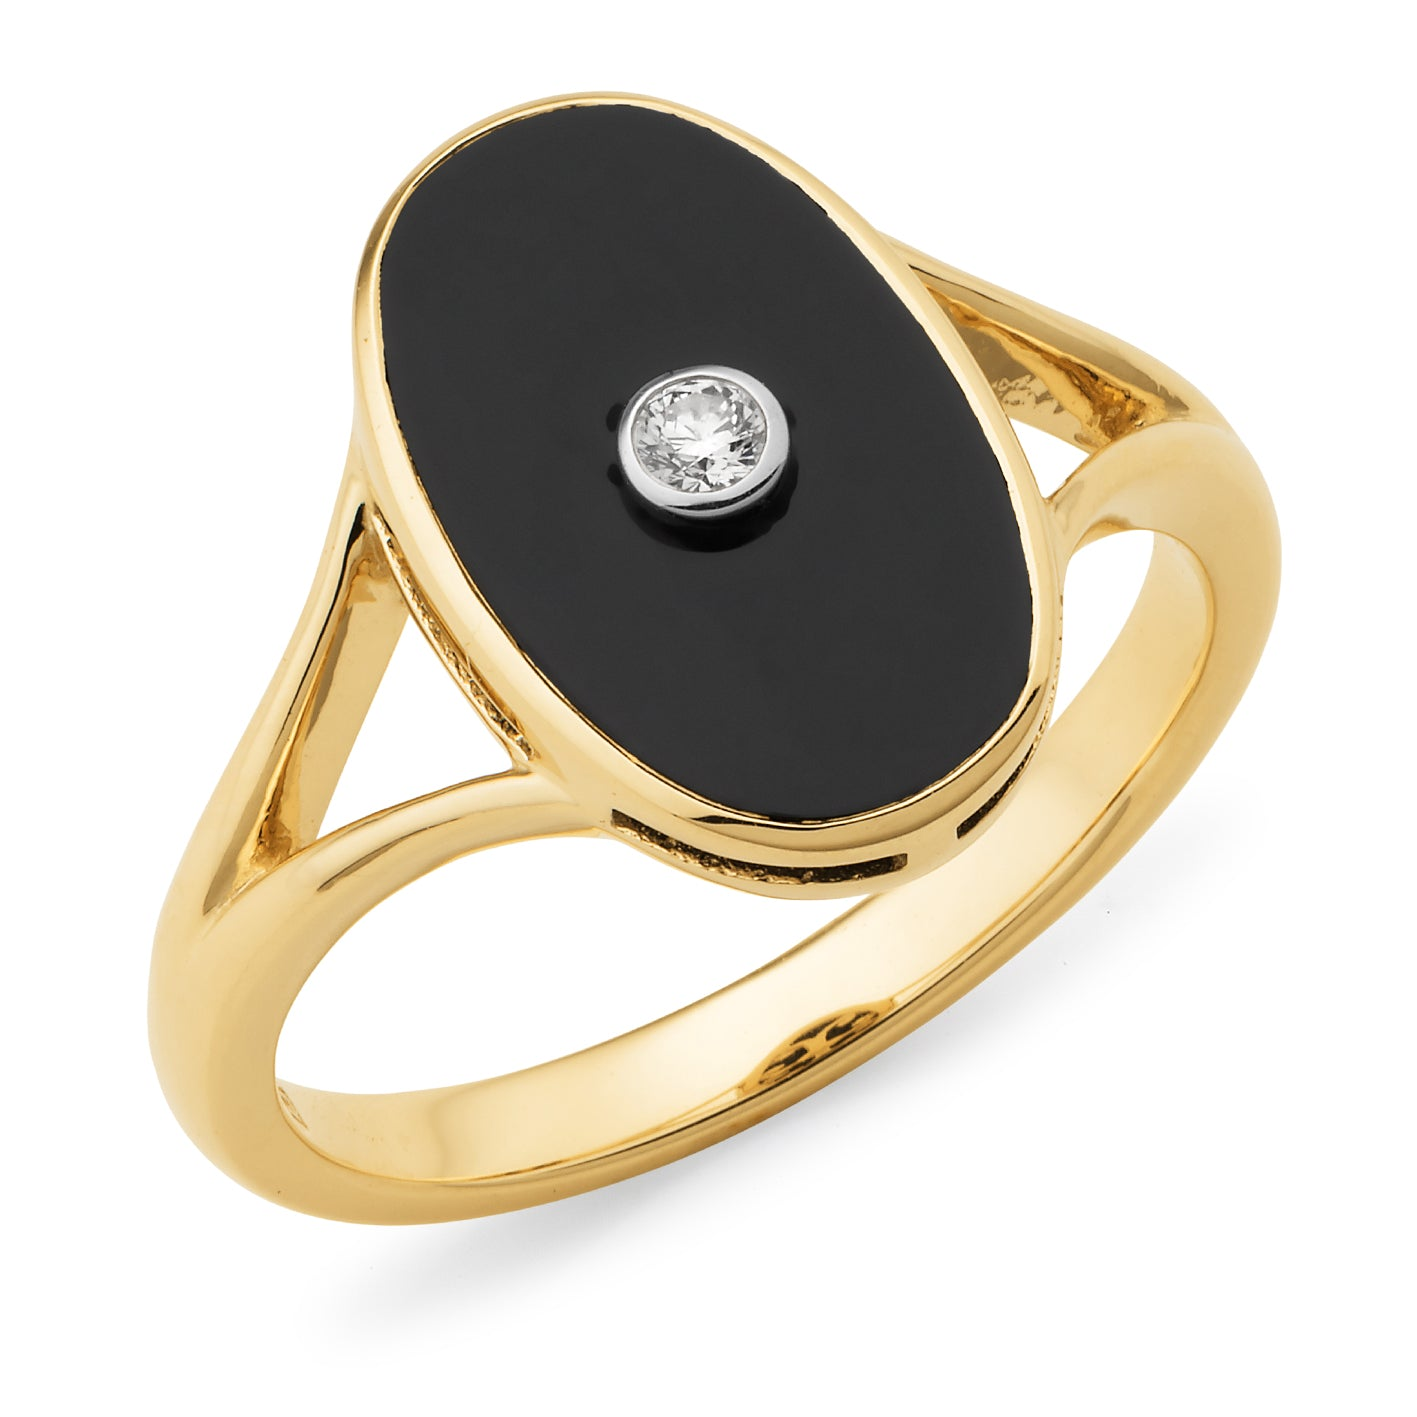 MMJ - Onyx & Diamond Bezel Set Dress Ring